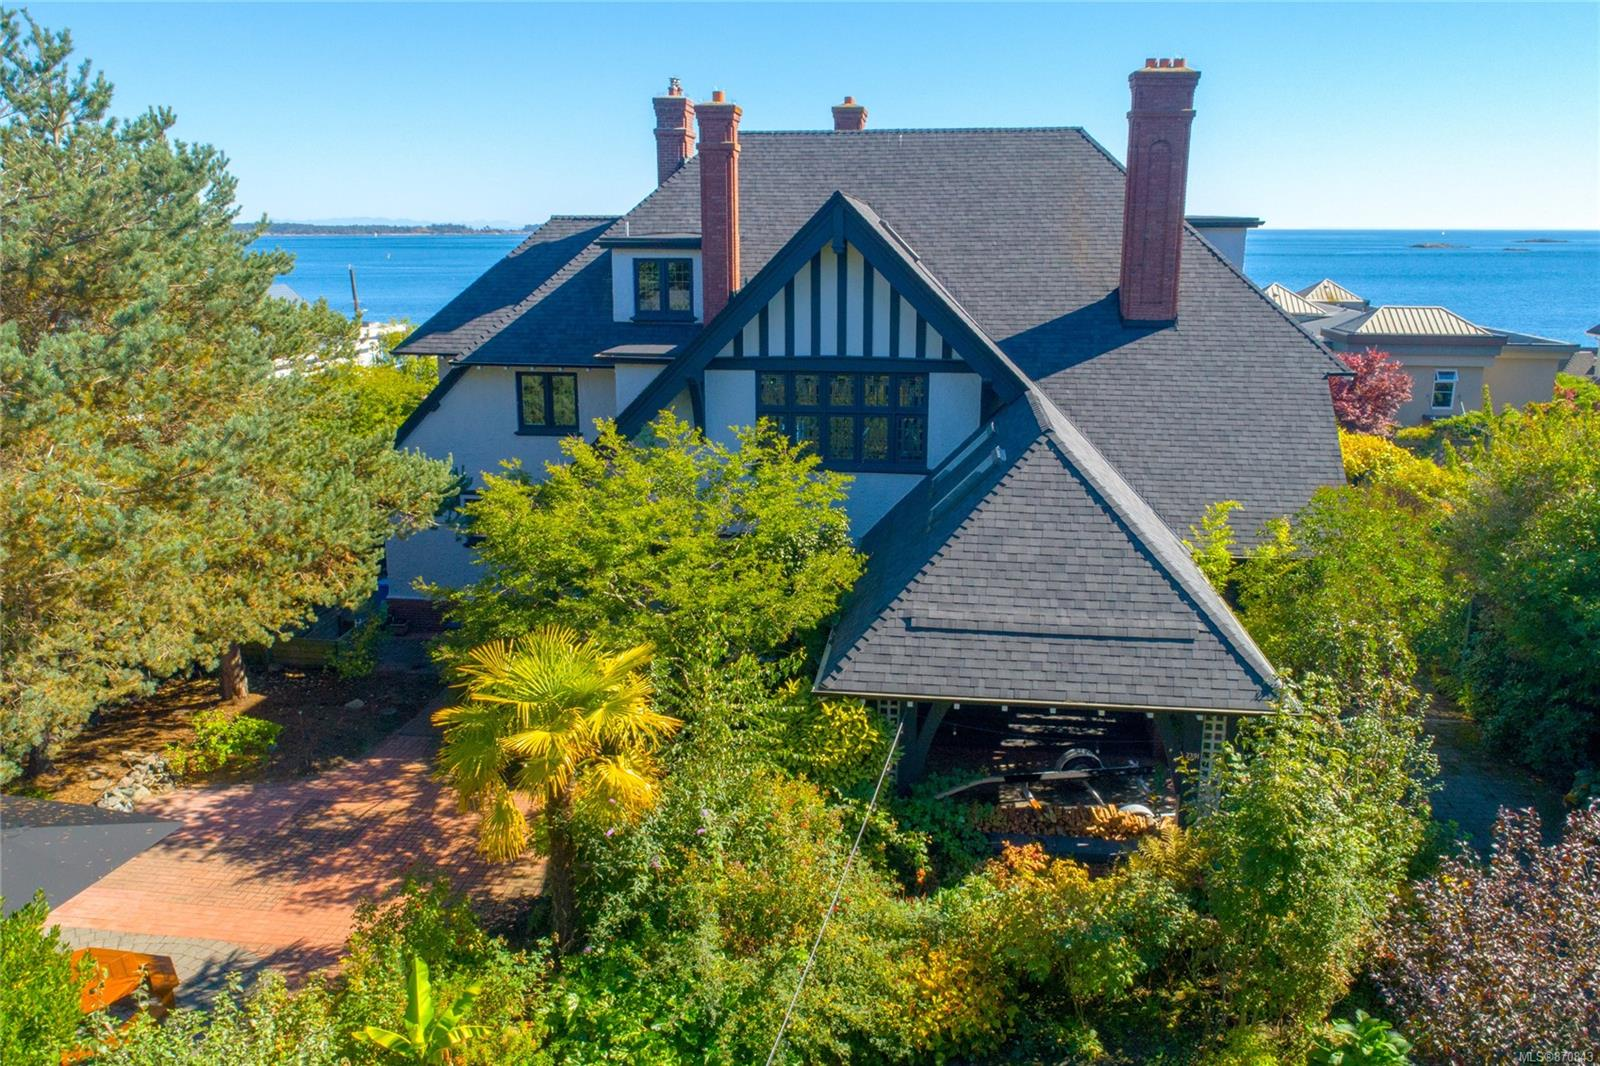 If you've ever dreamt of living in an amazing manor, in an excellent neighbourhood; here's your chance. The Finlayson home at 2391 Beach Dr. is one of renowned Samuel Maclures finest and most personal architectural statements. It was the last of his famous Arts and Craft builds in 1914/15  The past five owners have taken extremely good care of the home but none like the current owner who has spared no expense in making sure this homes legacy will live on. The extensive list of work that has been done is available. The well known designer, Brian Paquette was commissioned to decorate and modernize the home while keeping many of the very elaborate original light fixtures, hardware, window screens, fireplaces & screens etc. With all the modern conveniences and healthy attributes; it simply must be seen to fully appreciate how comfortable this old masterpiece is. Ideally located near to Willows Beach, Estevan Village, Glenlyon Norfork School, Oak Bay Ave, Oak Bay Marina &, RV Golf Course.